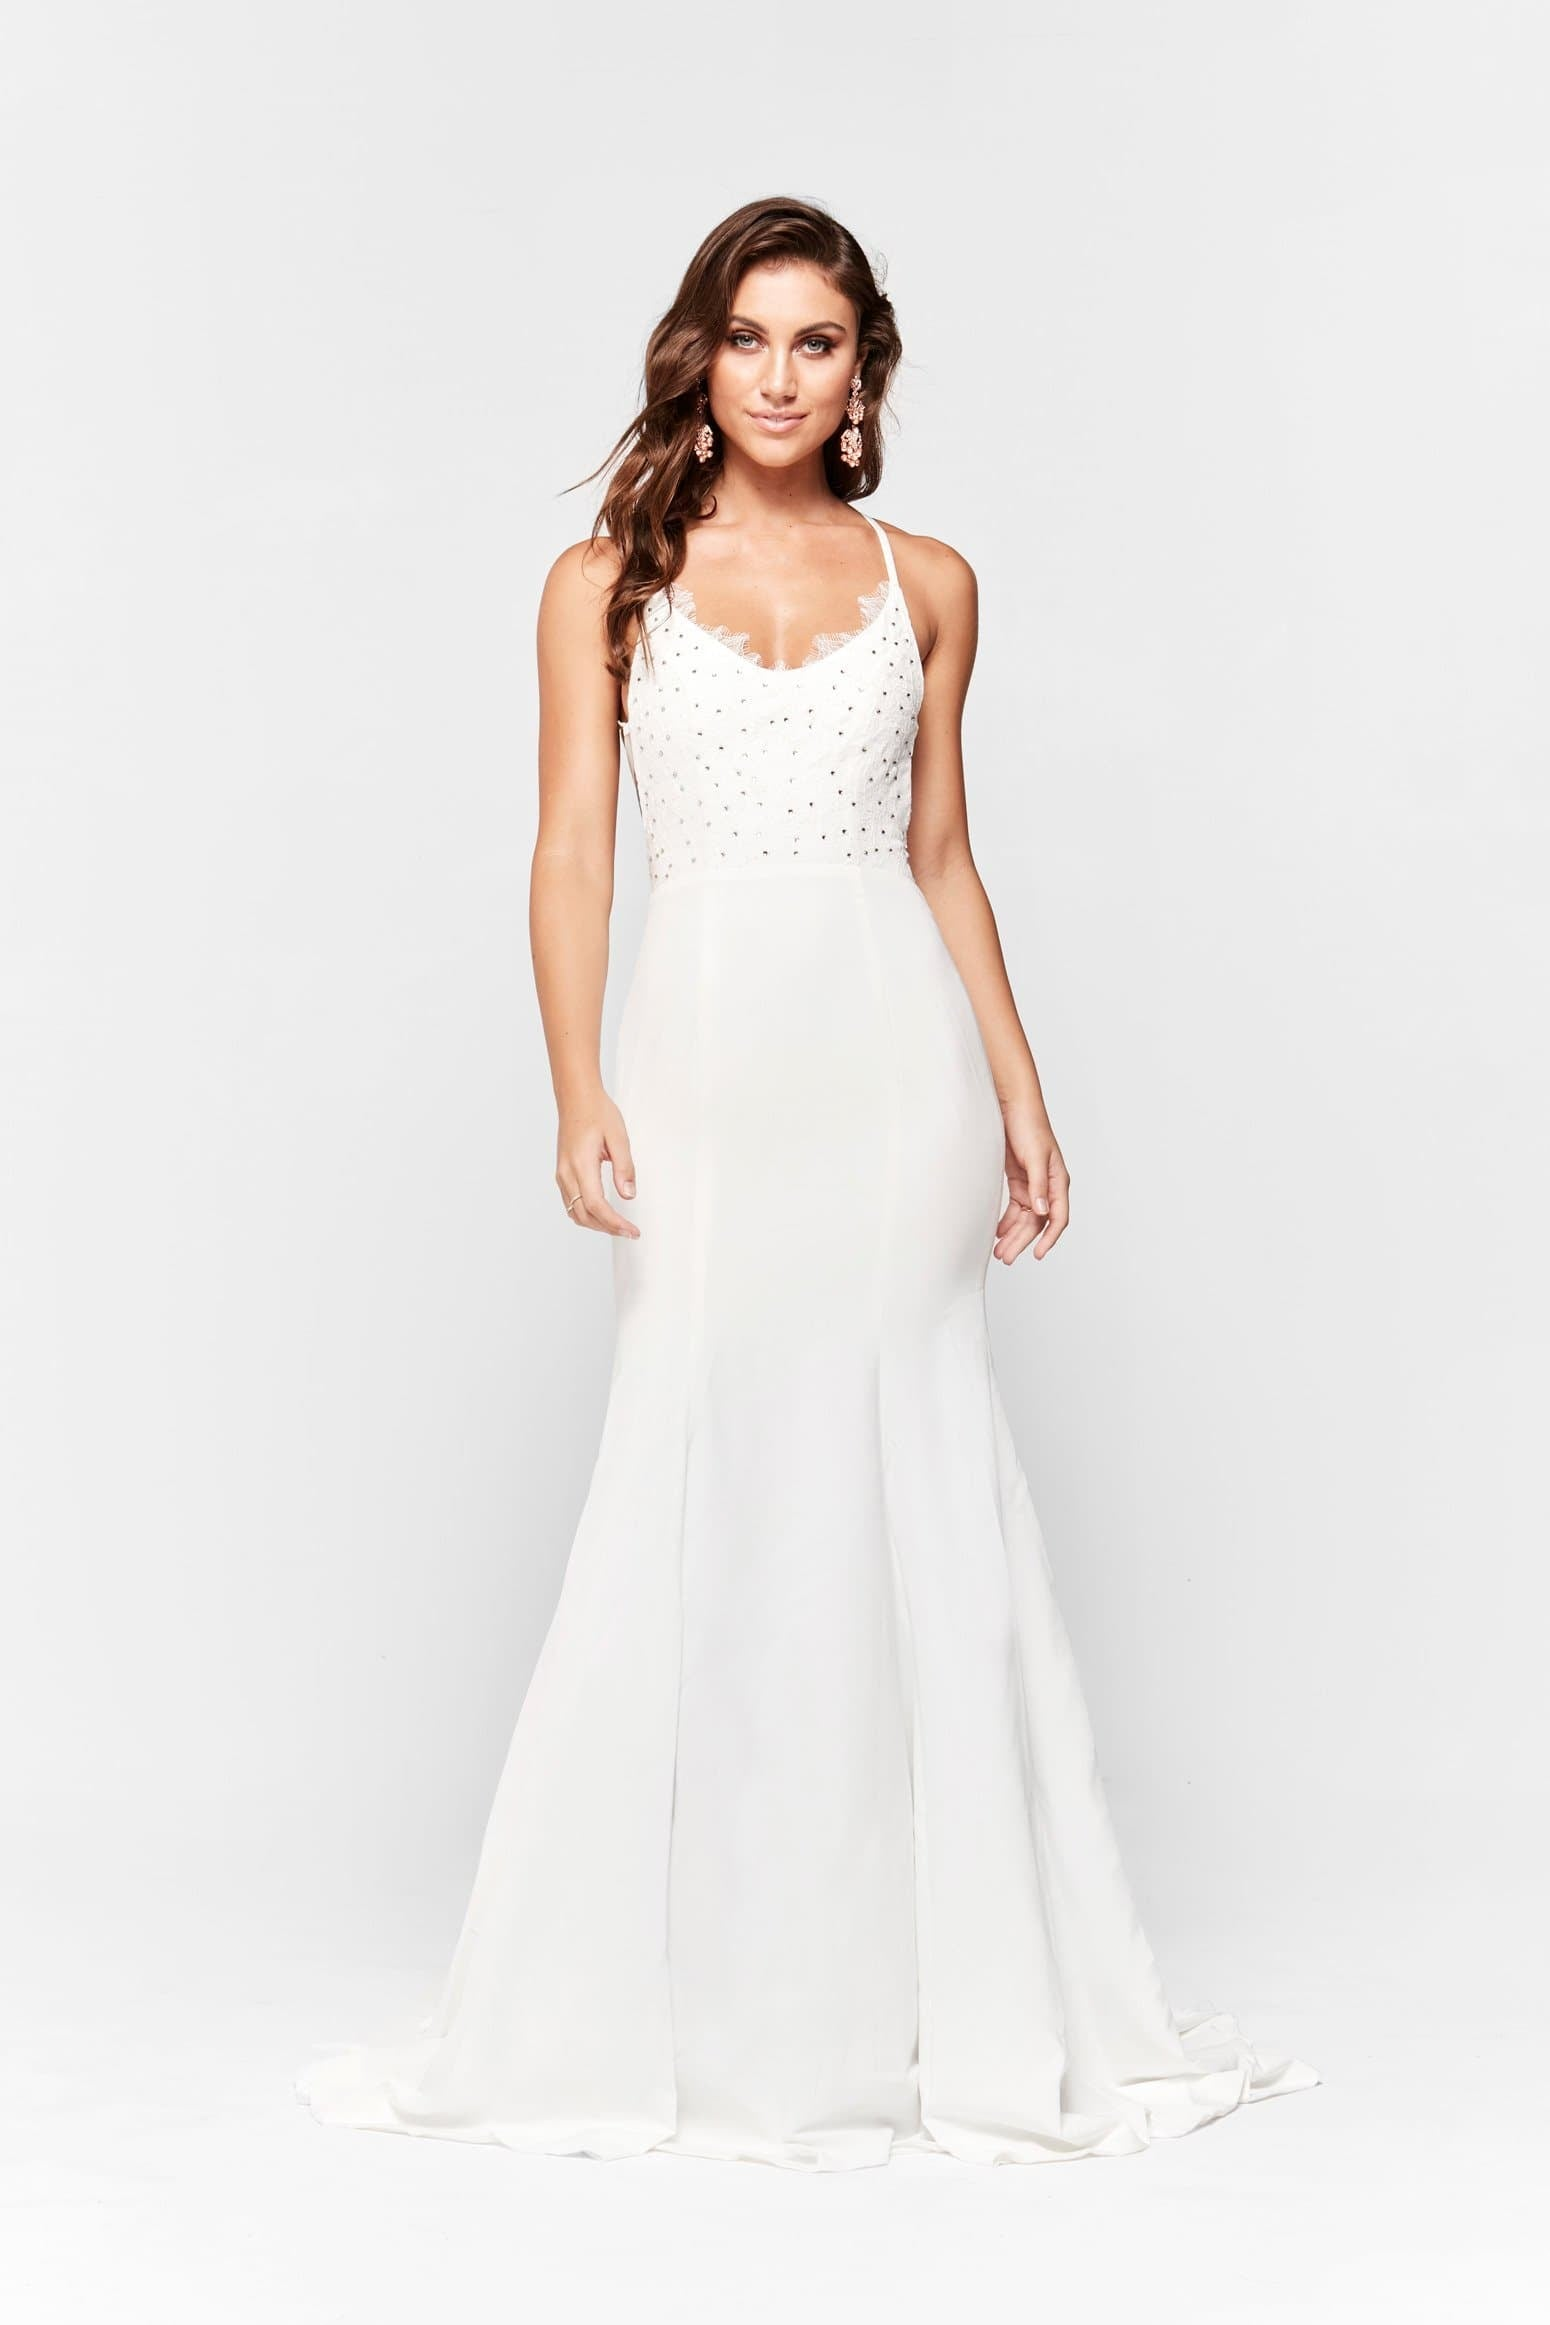 A&N Anika - White Ponti Lace Formal gown with Lace up Back – A&N ...